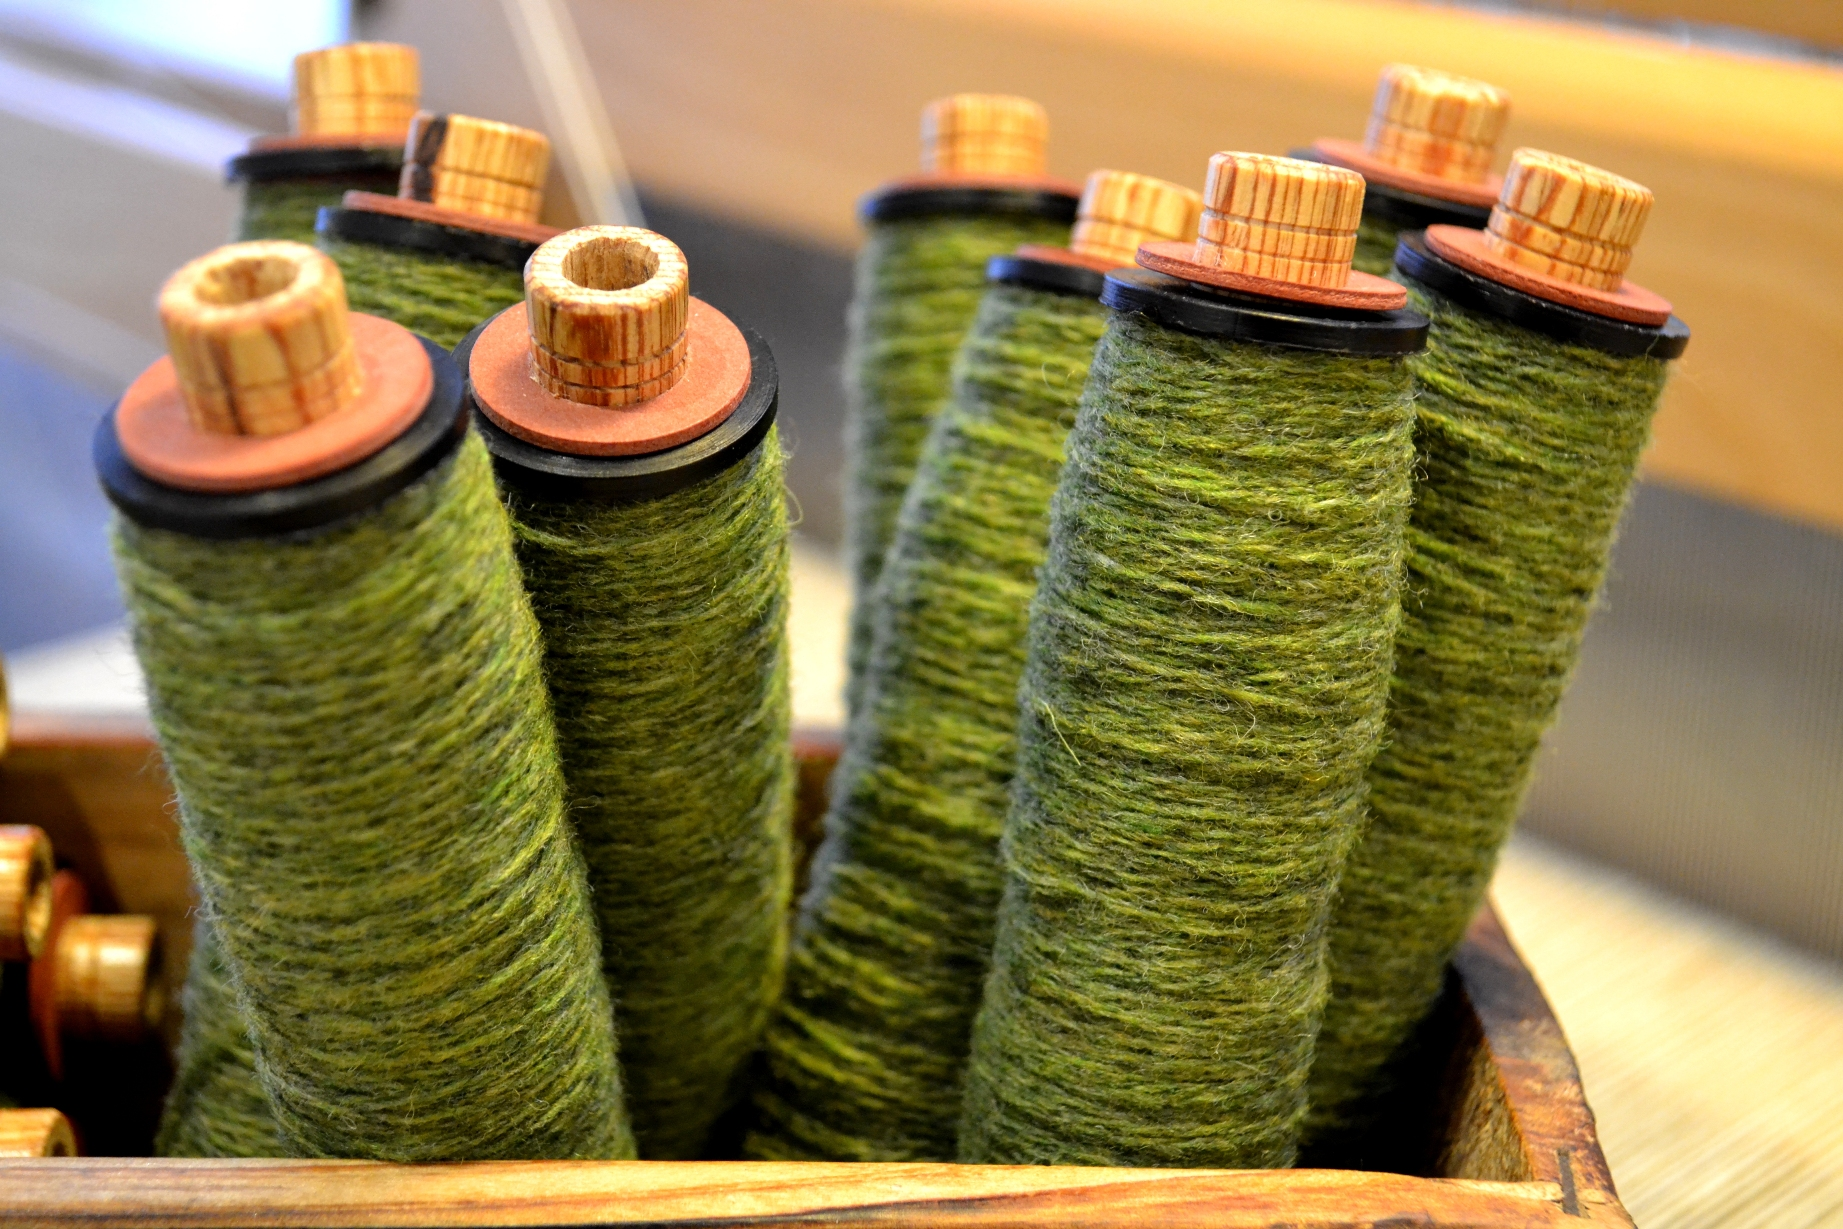 Green yarn on pirns ready for weaving